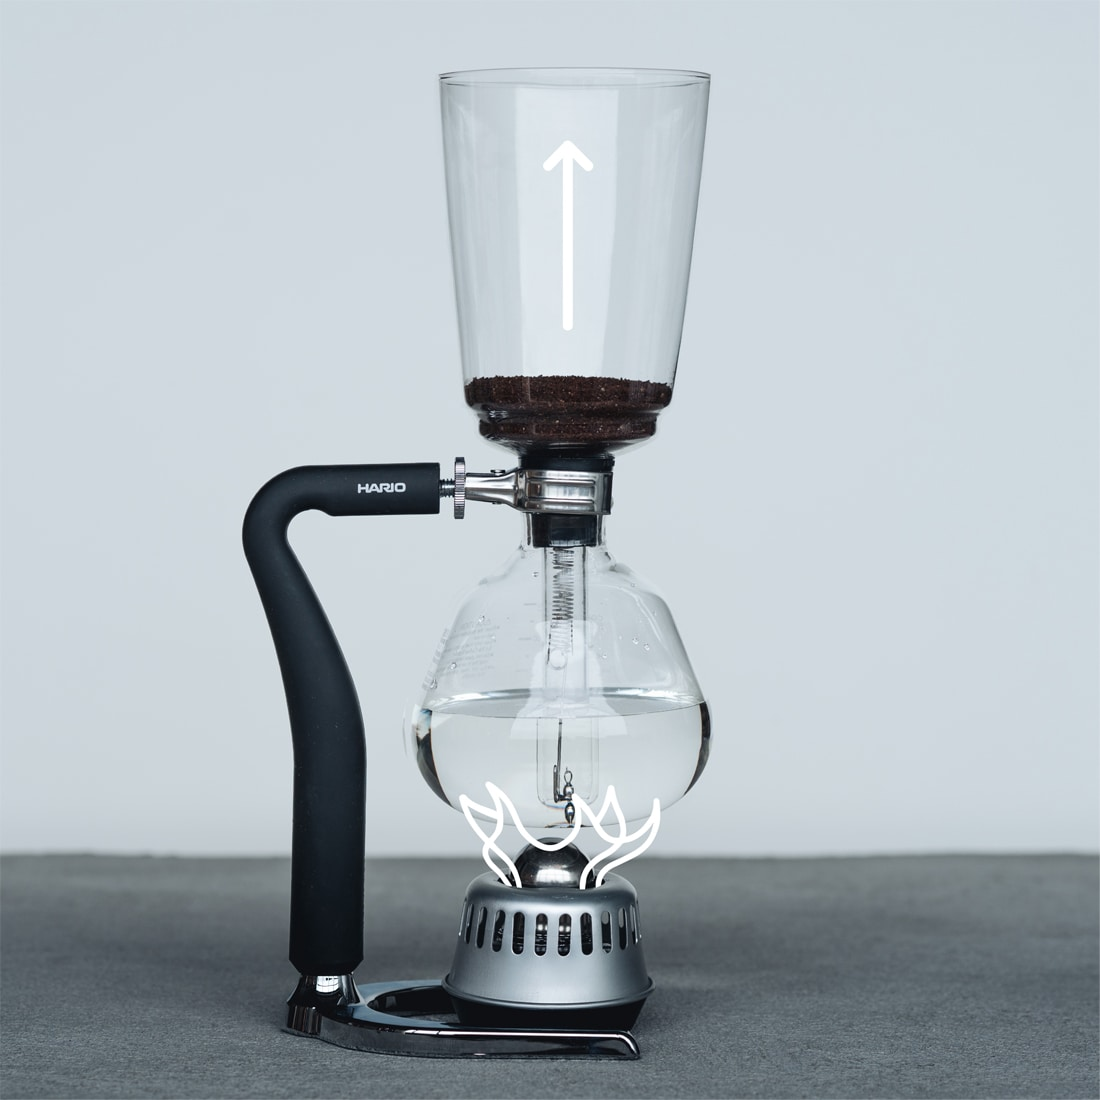 Siphon brewer with overlaid line illustration of a flame at the base of the brewer